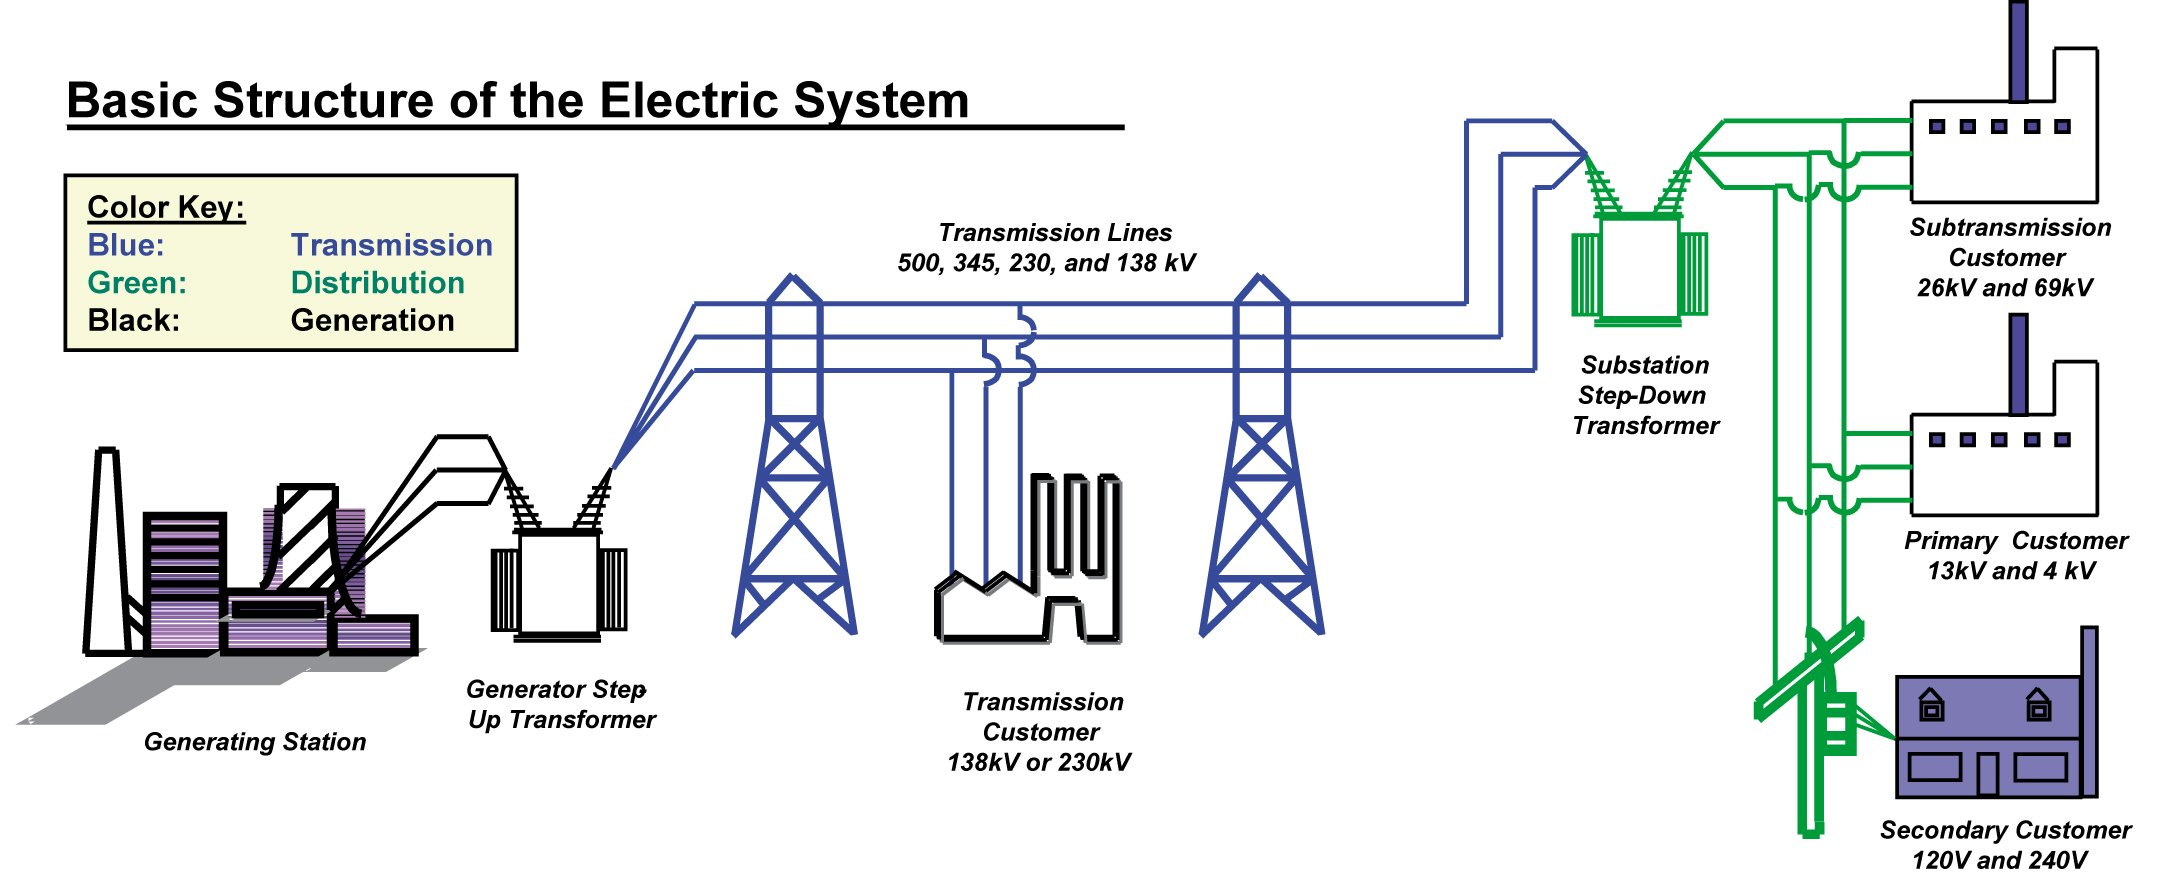 Ultra High Voltage Transmission UHV A New Way to Move